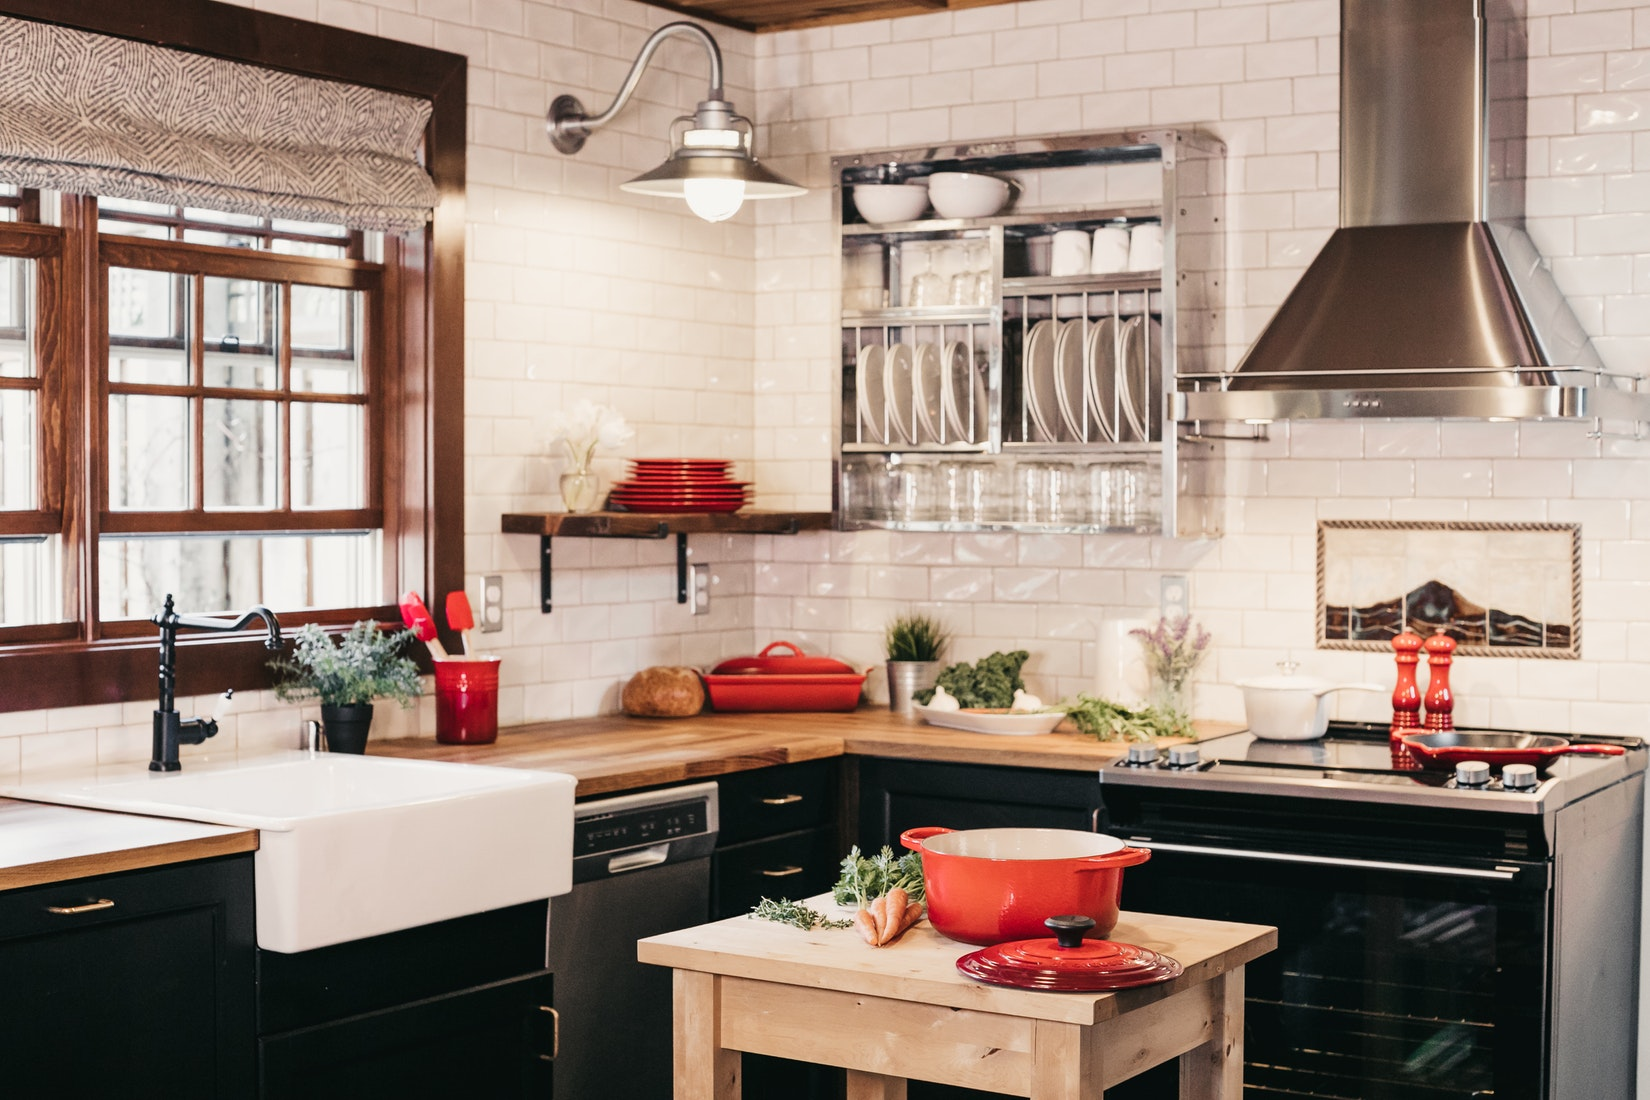 Learn How To Maximize Space In A Small Kitchen